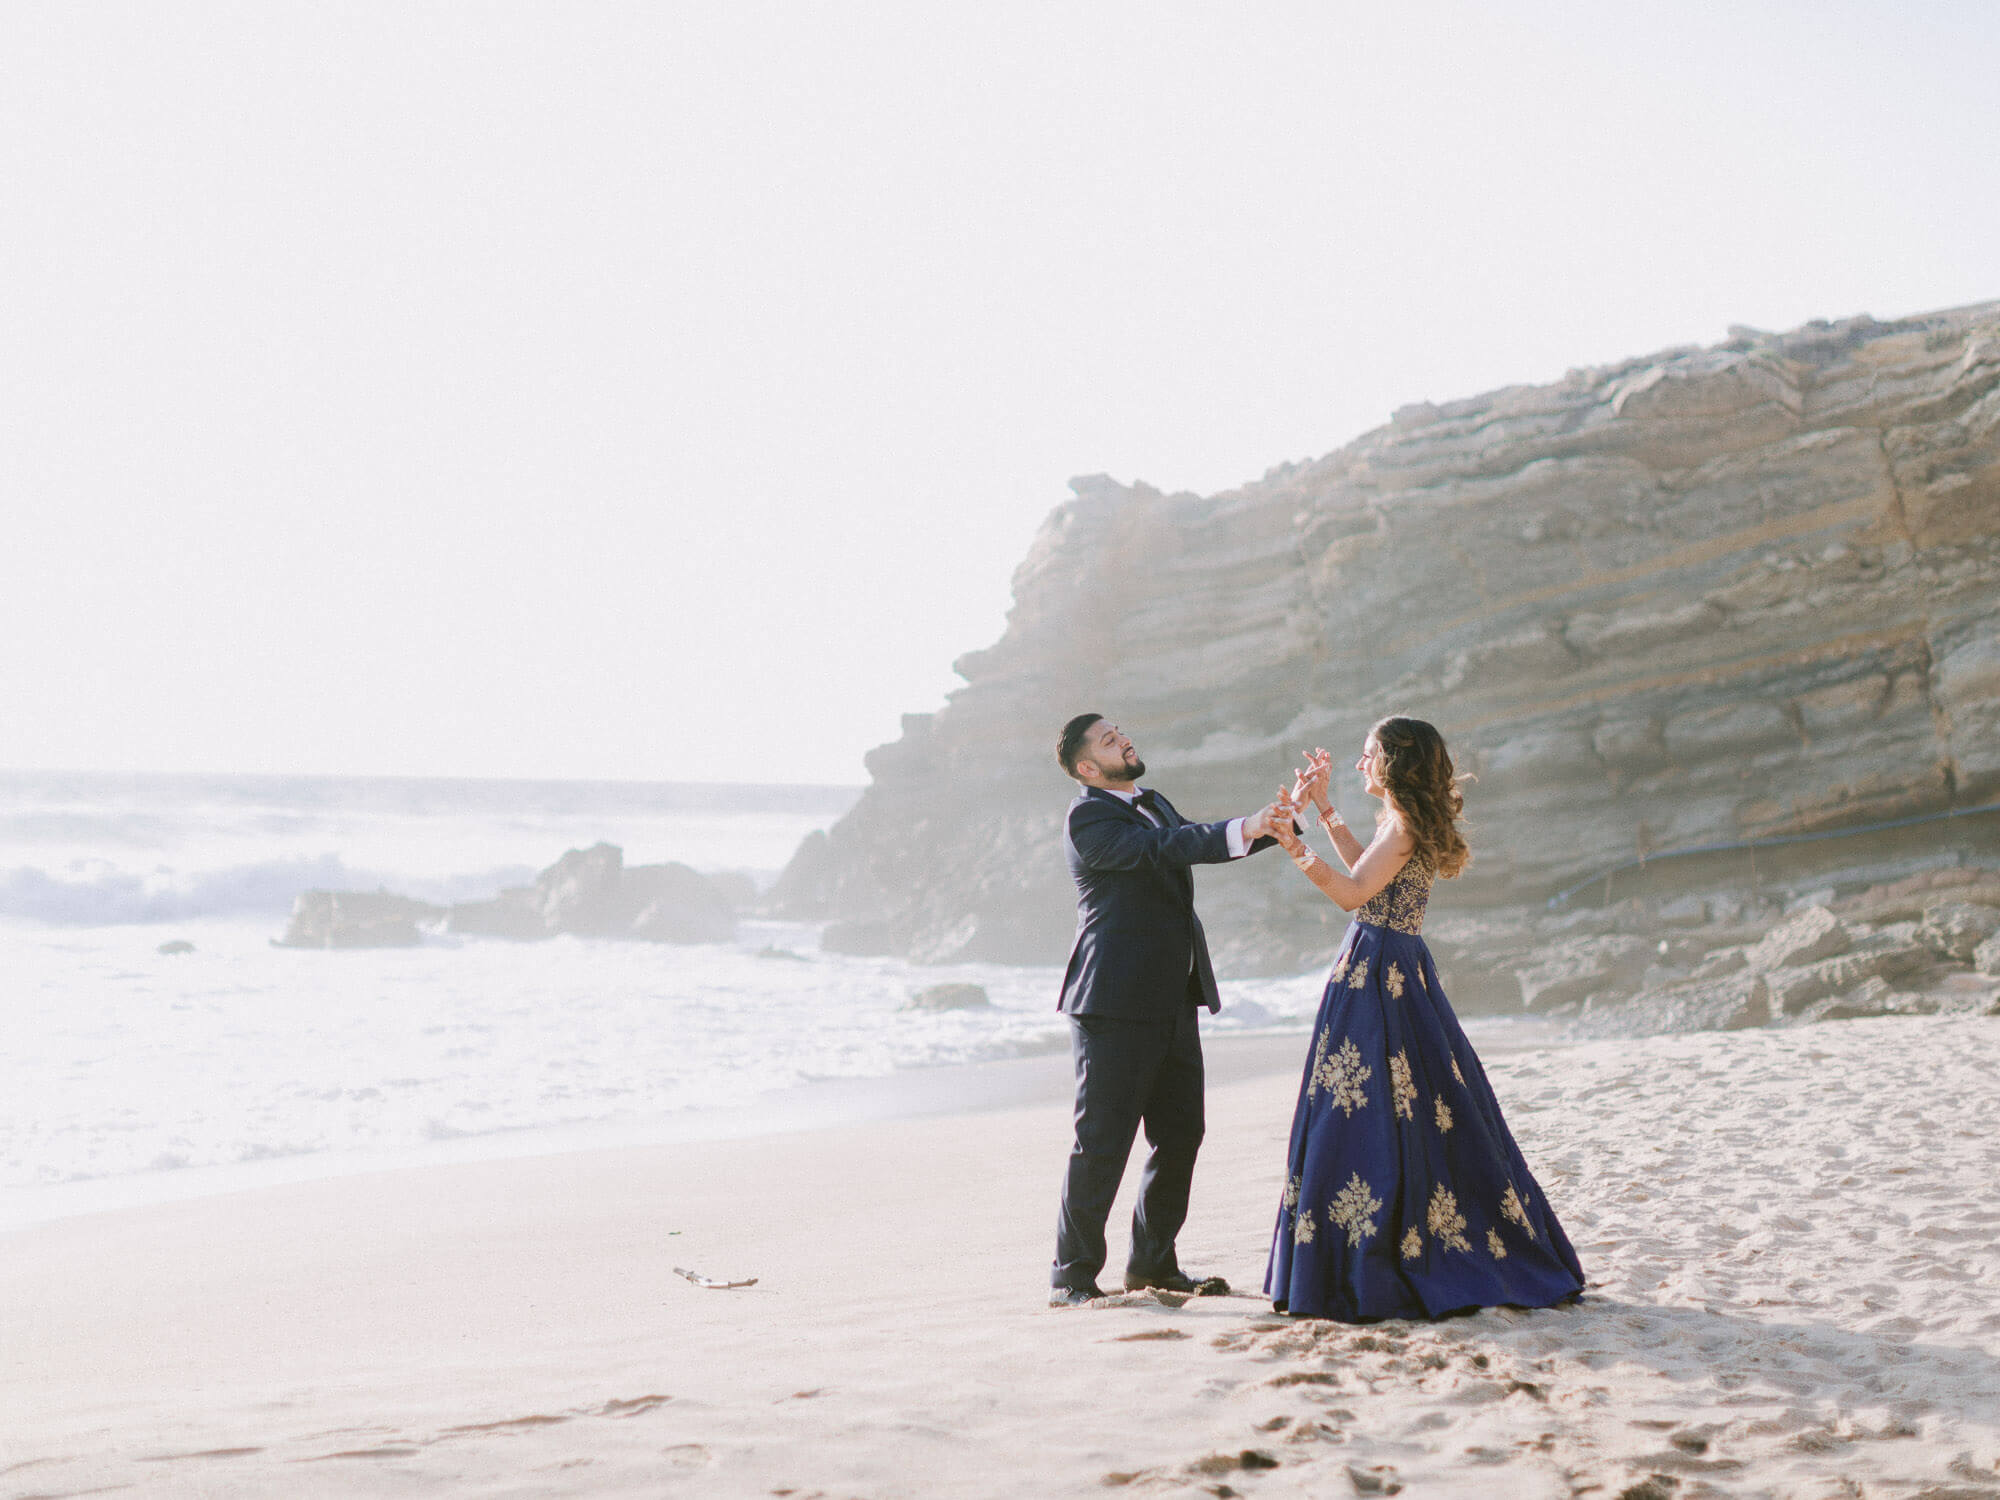 Joyful Hindu bride and groom romantic pose at the beach by Portugal Wedding Photographer